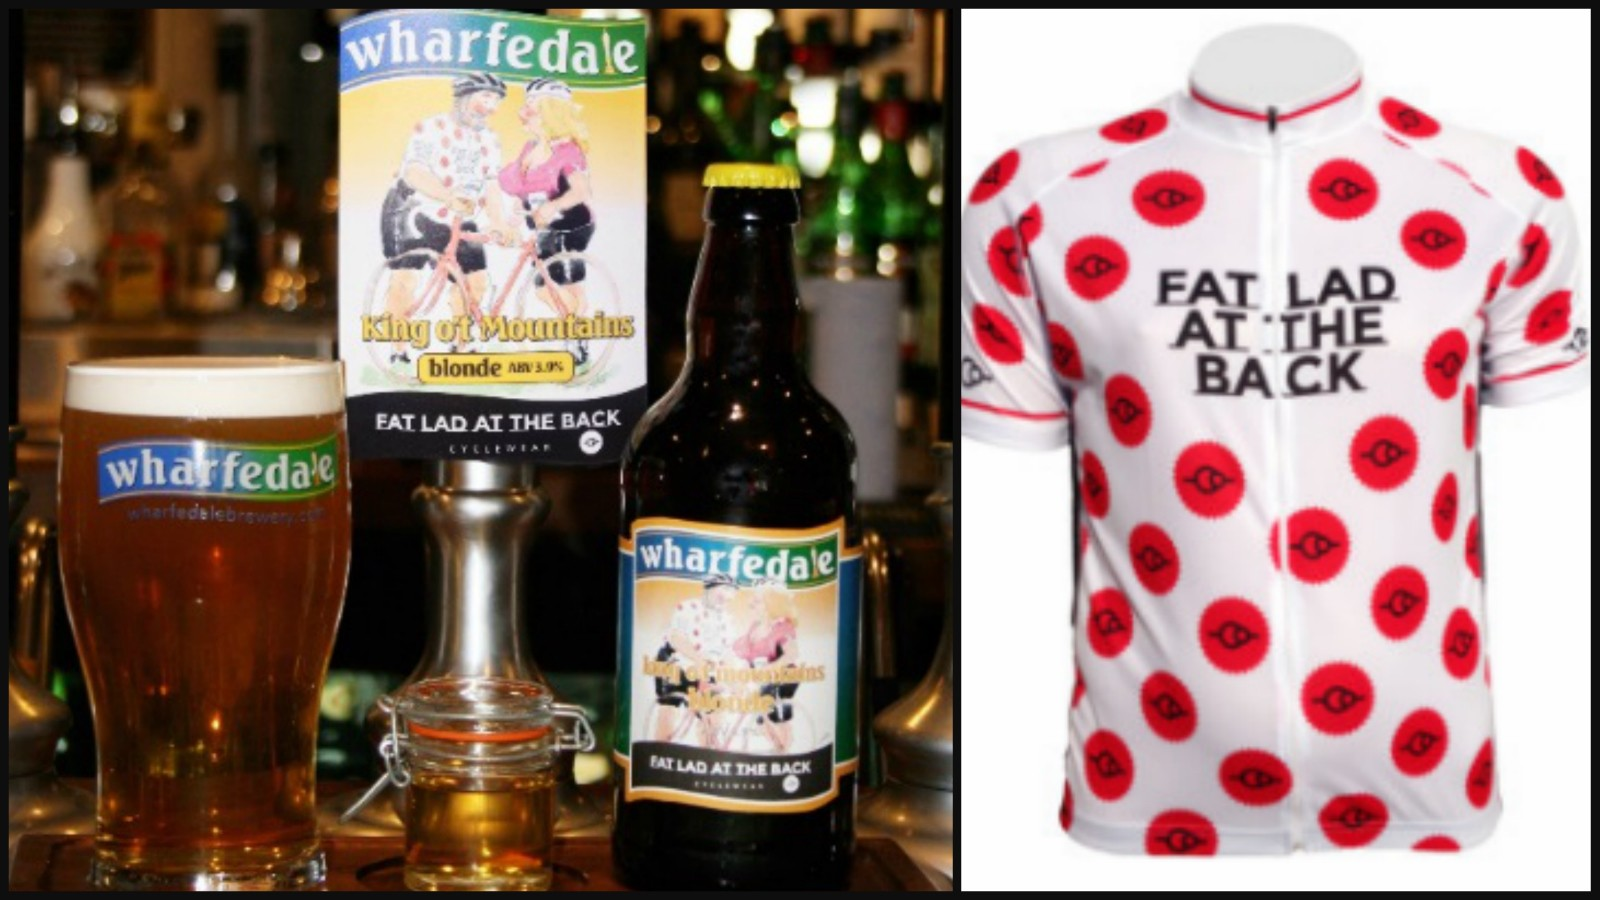 Fat Lad At The Back has launched a special King o' t Mountains beer and jersey